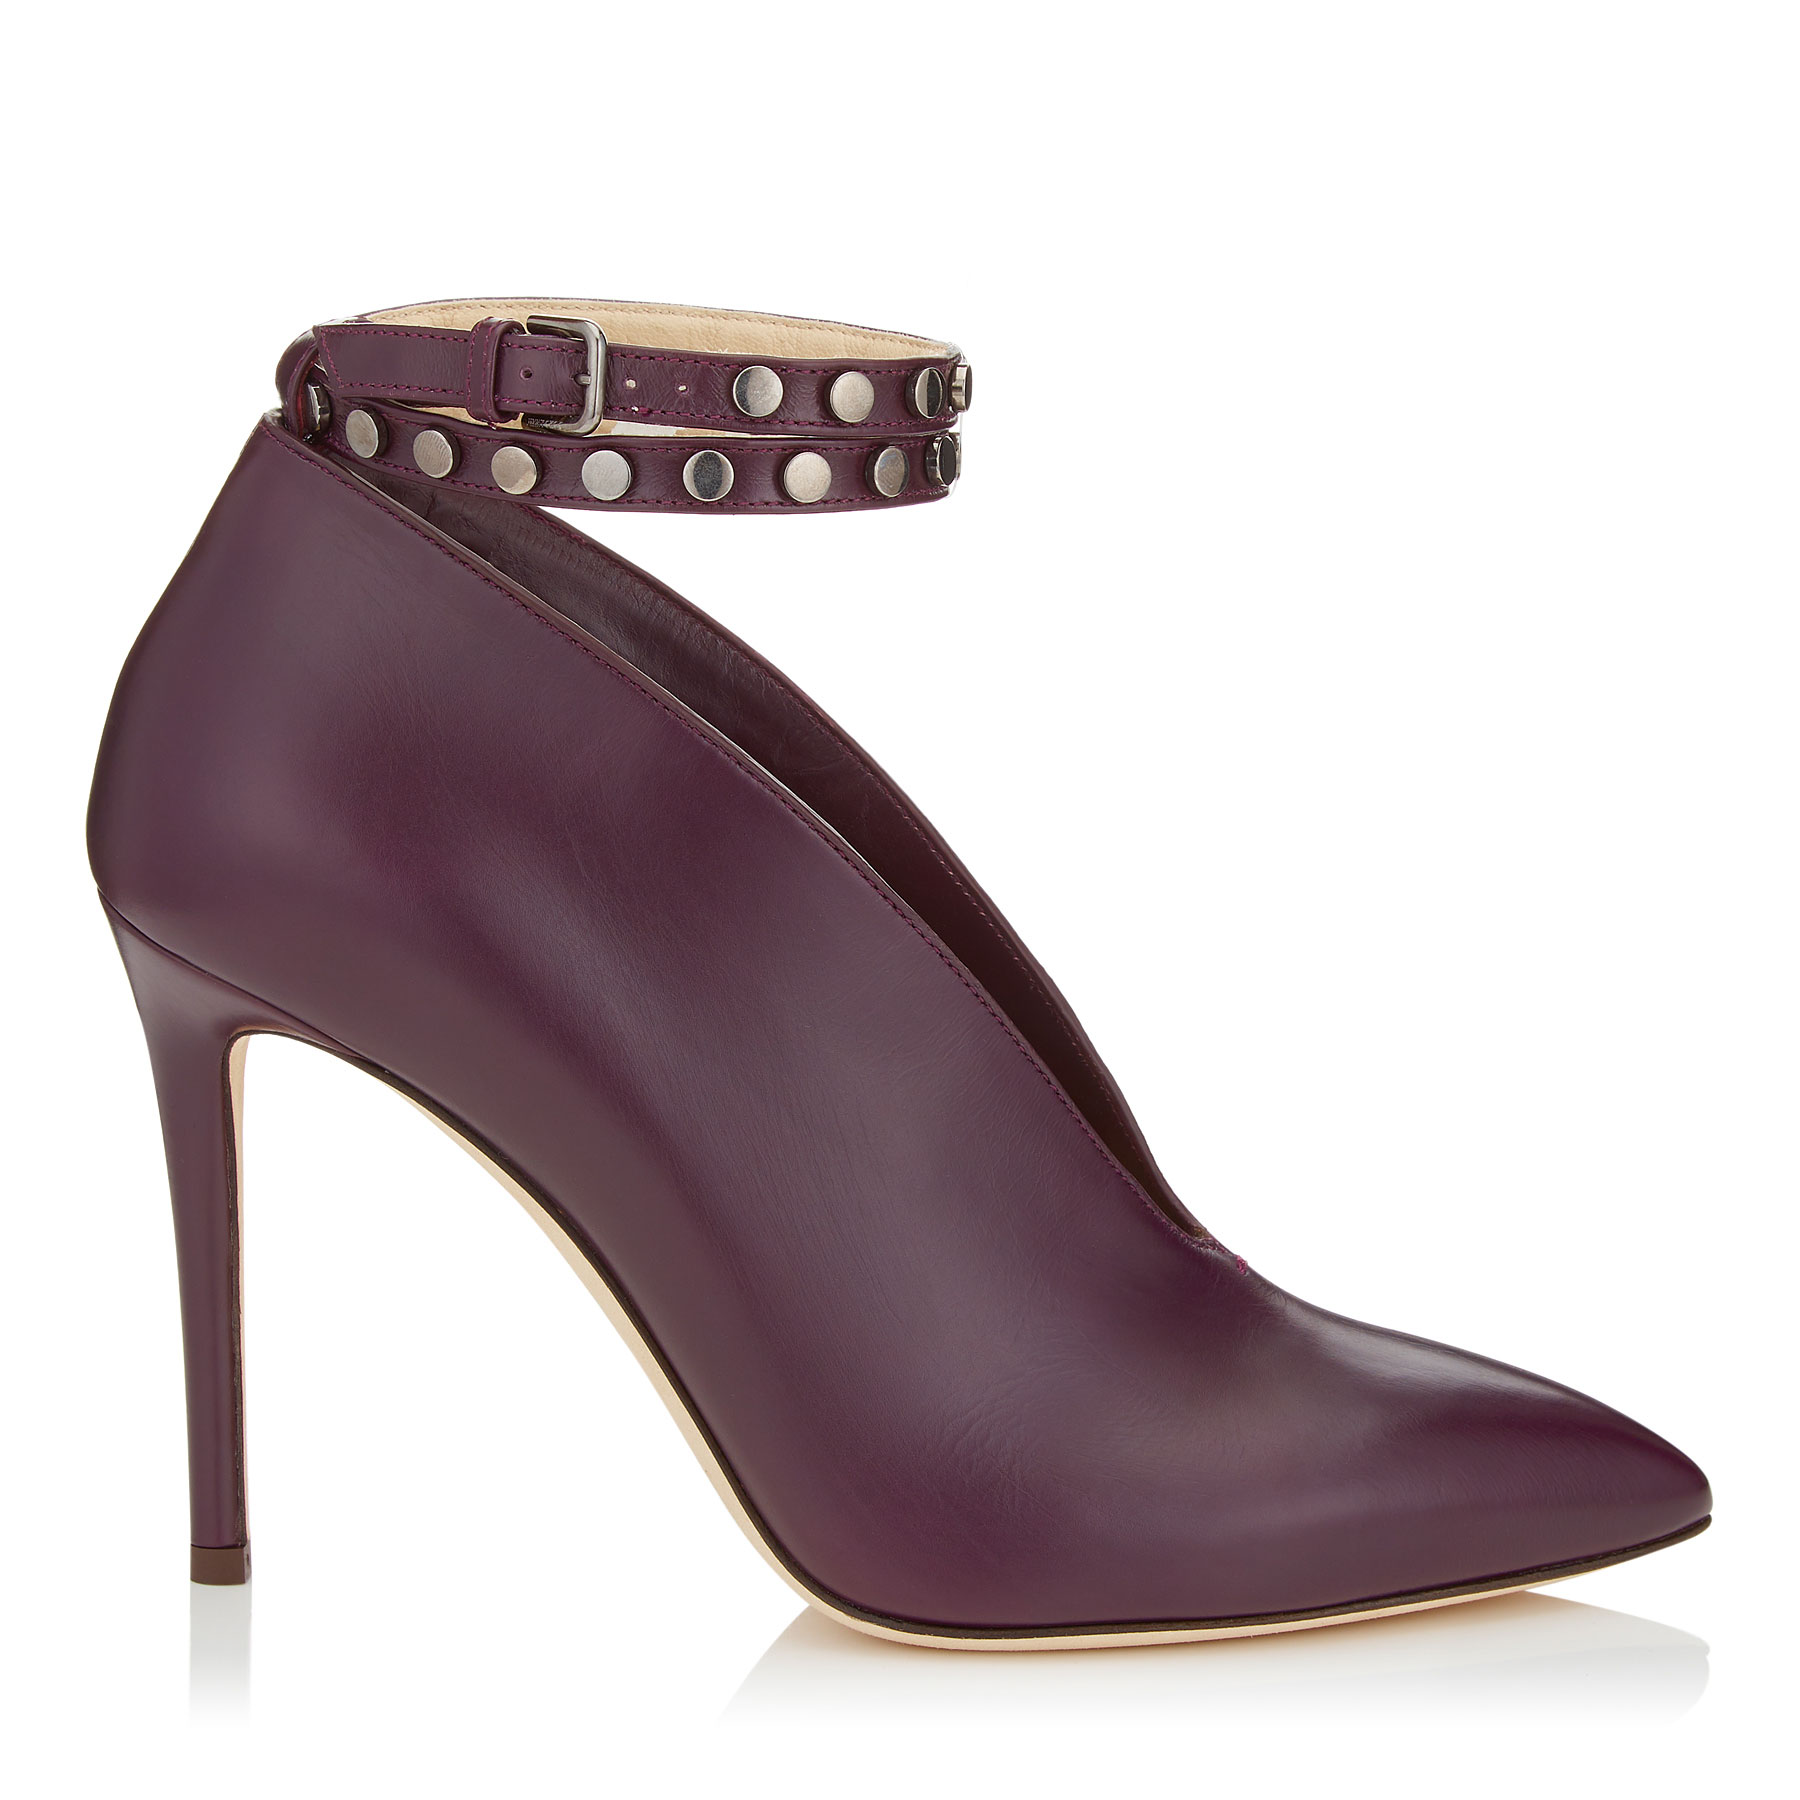 LARK 100 Grape Shiny Calf Leather Booties by Jimmy Choo